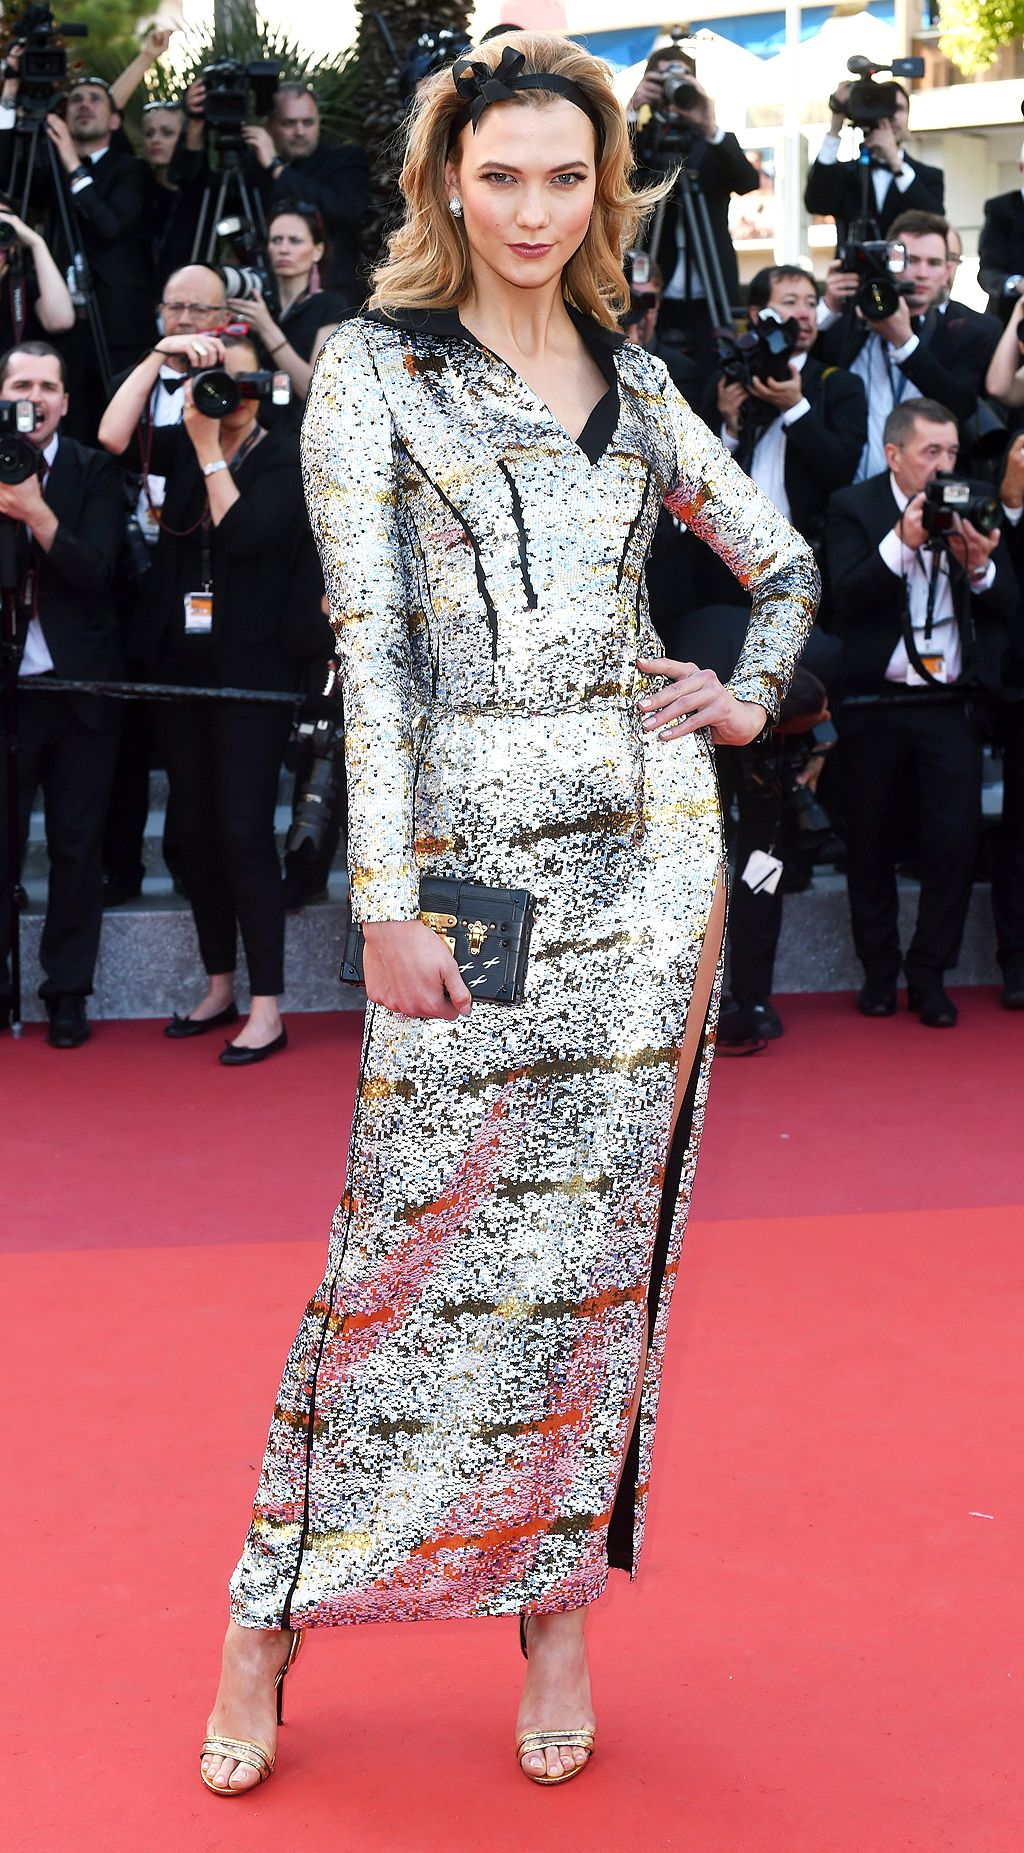 20 Amazing Fashion Moments From The Cannes FilmFestival